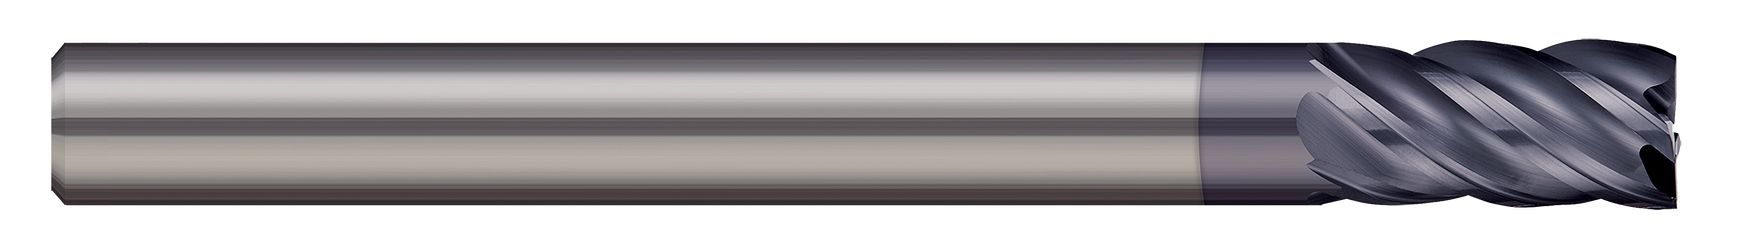 End Mills for Steels & High Temperature Alloys - Square - 5 Flute - Variable Helix